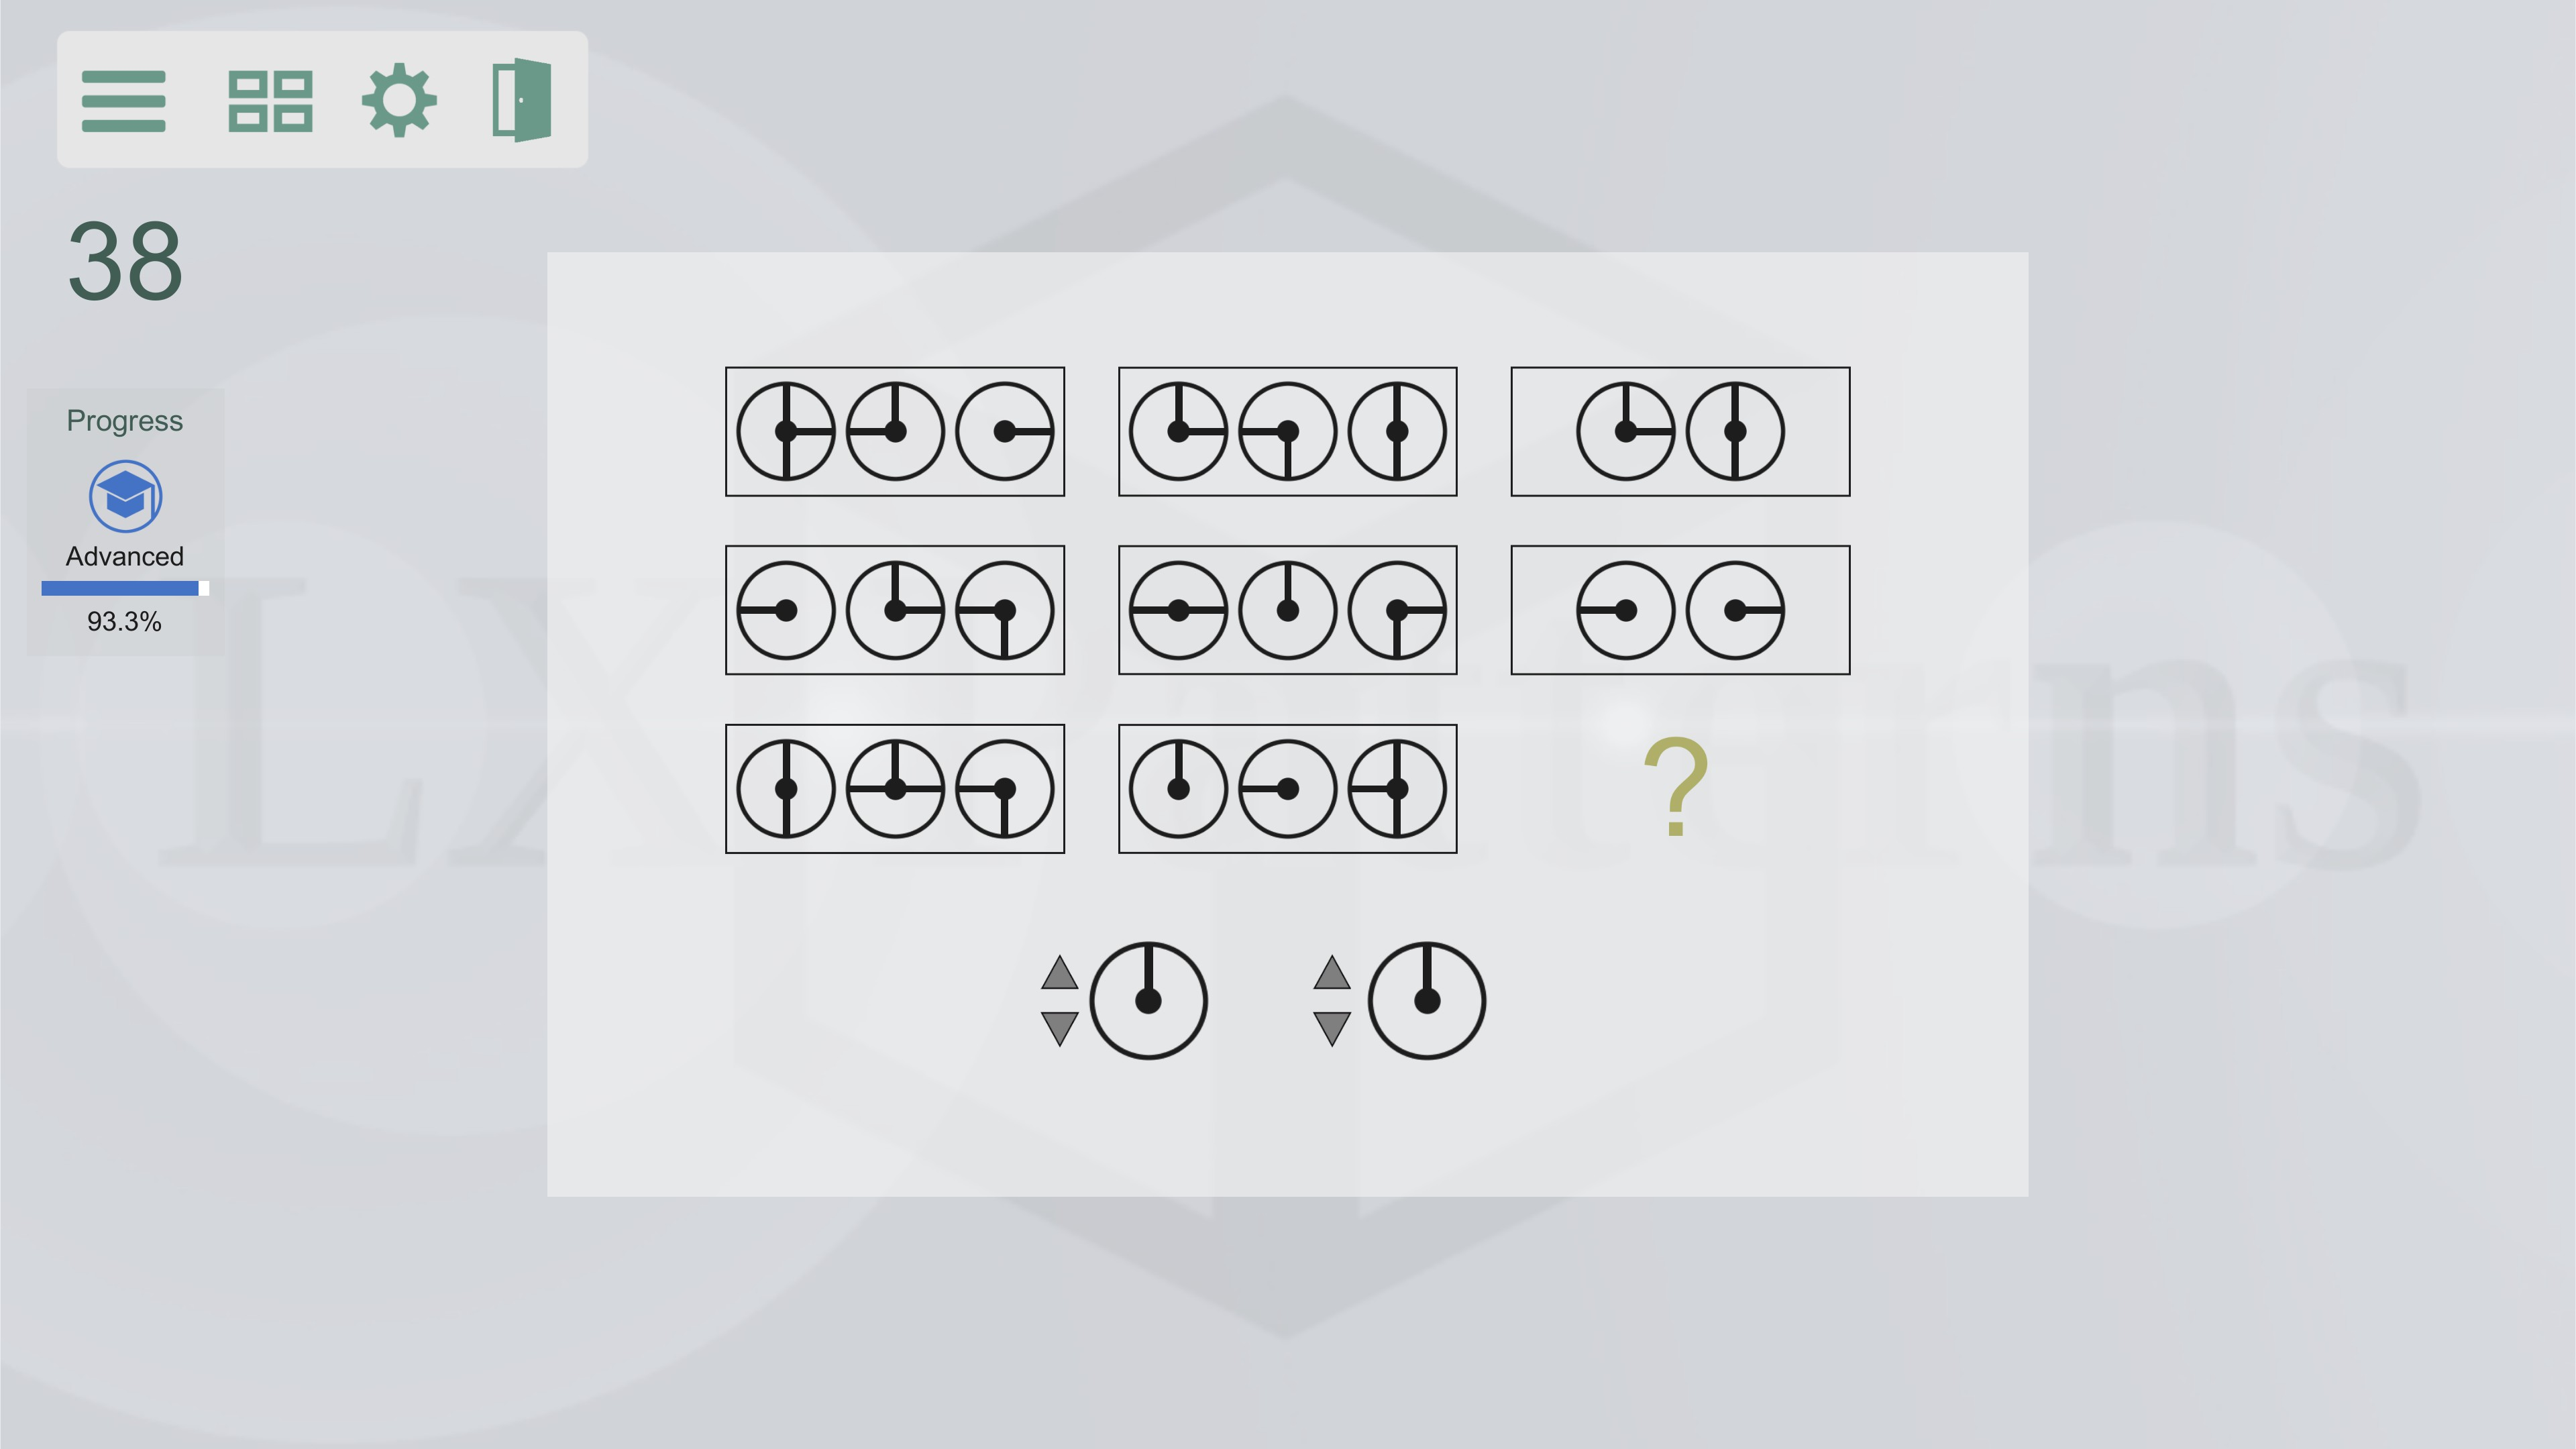 LX Patterns. Level 38 intermediate puzzle. 8 sets of rotating dials are shown, the player must provide what the 9th set would be. The background here is white instead of black like other images.